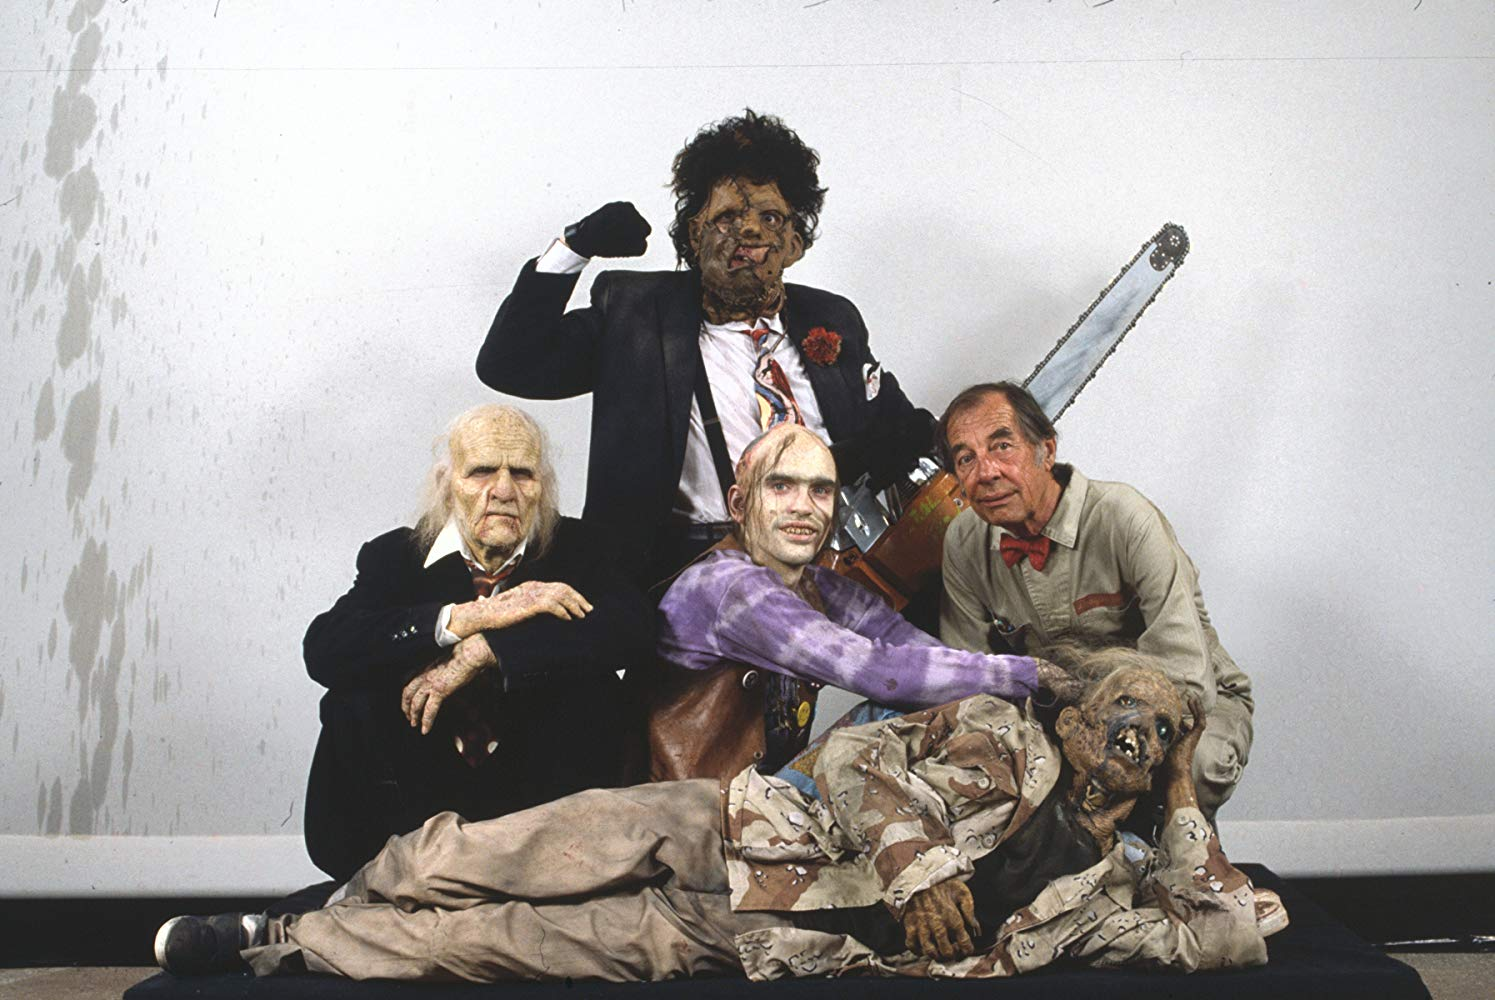 The Sawyer family - (l to r) Grandpa (Ken Evert), Leatherface (Bill Johnson), Chop-Top (Bill Moseley) and The Cook (Jim Siedow) in The Texas Chainsaw Massacre 2 (1986)